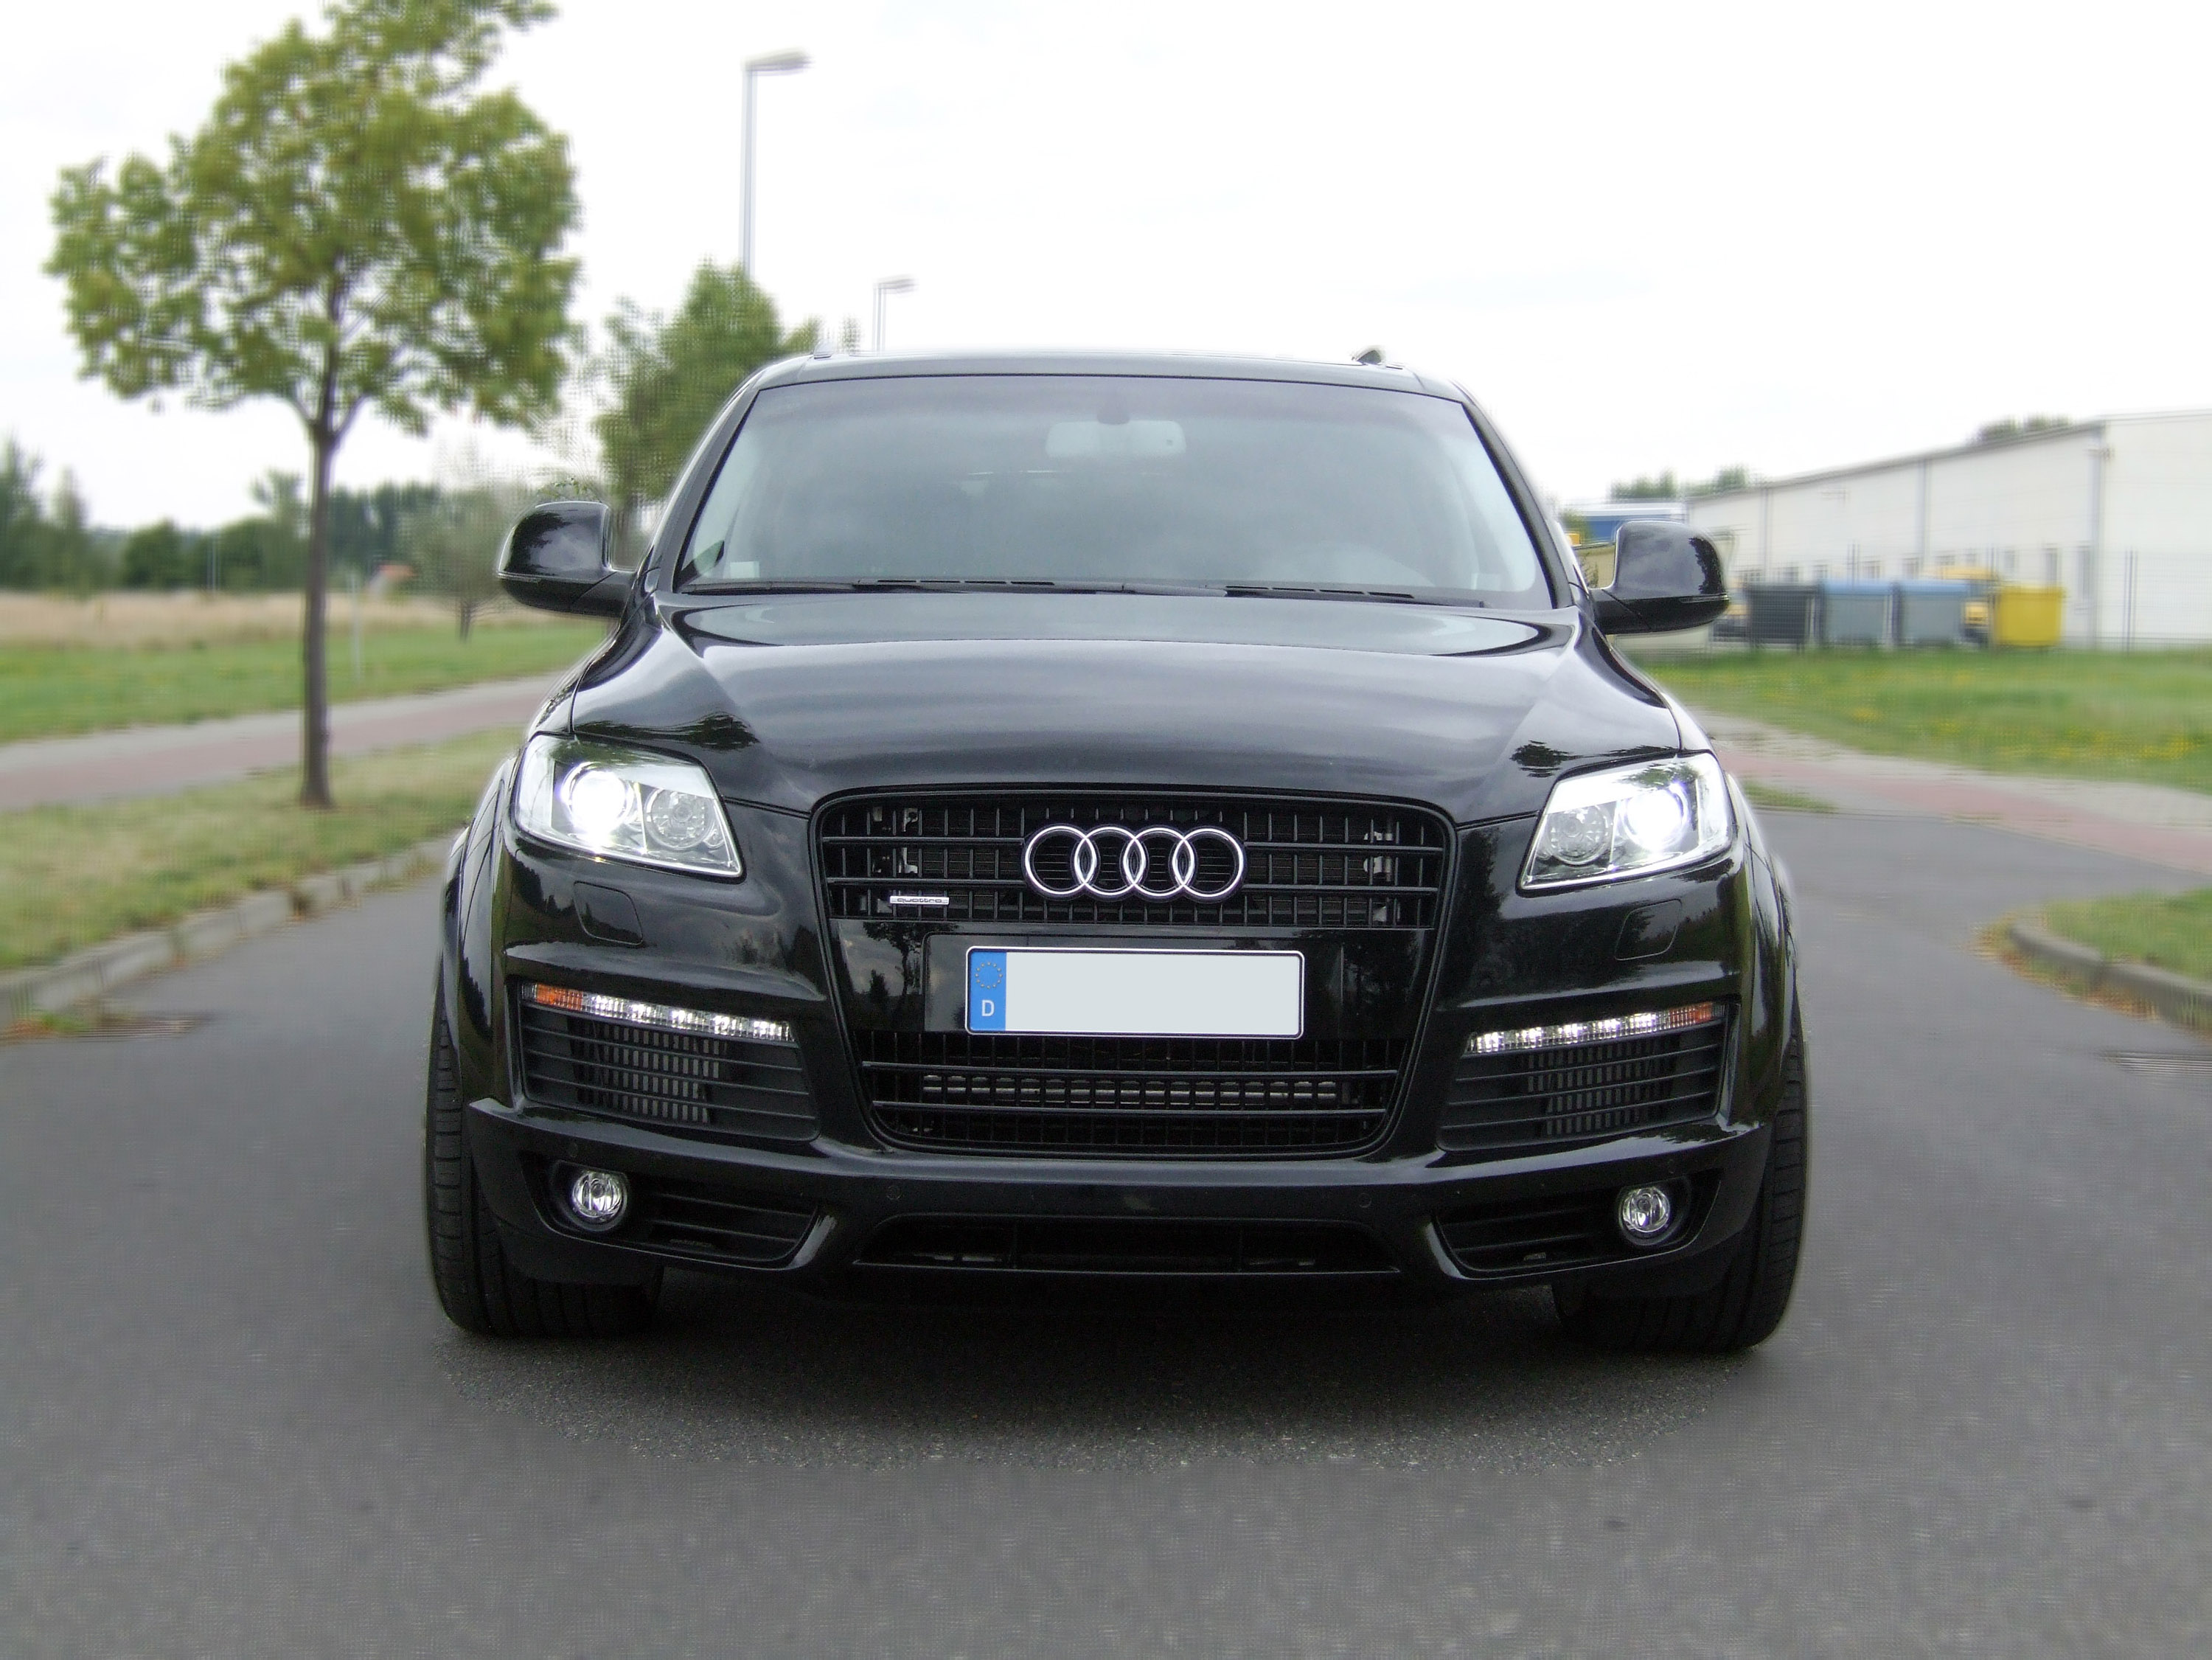 Avus Performance Audi Q7 A Slightly Different Suv HD Wallpapers Download free images and photos [musssic.tk]